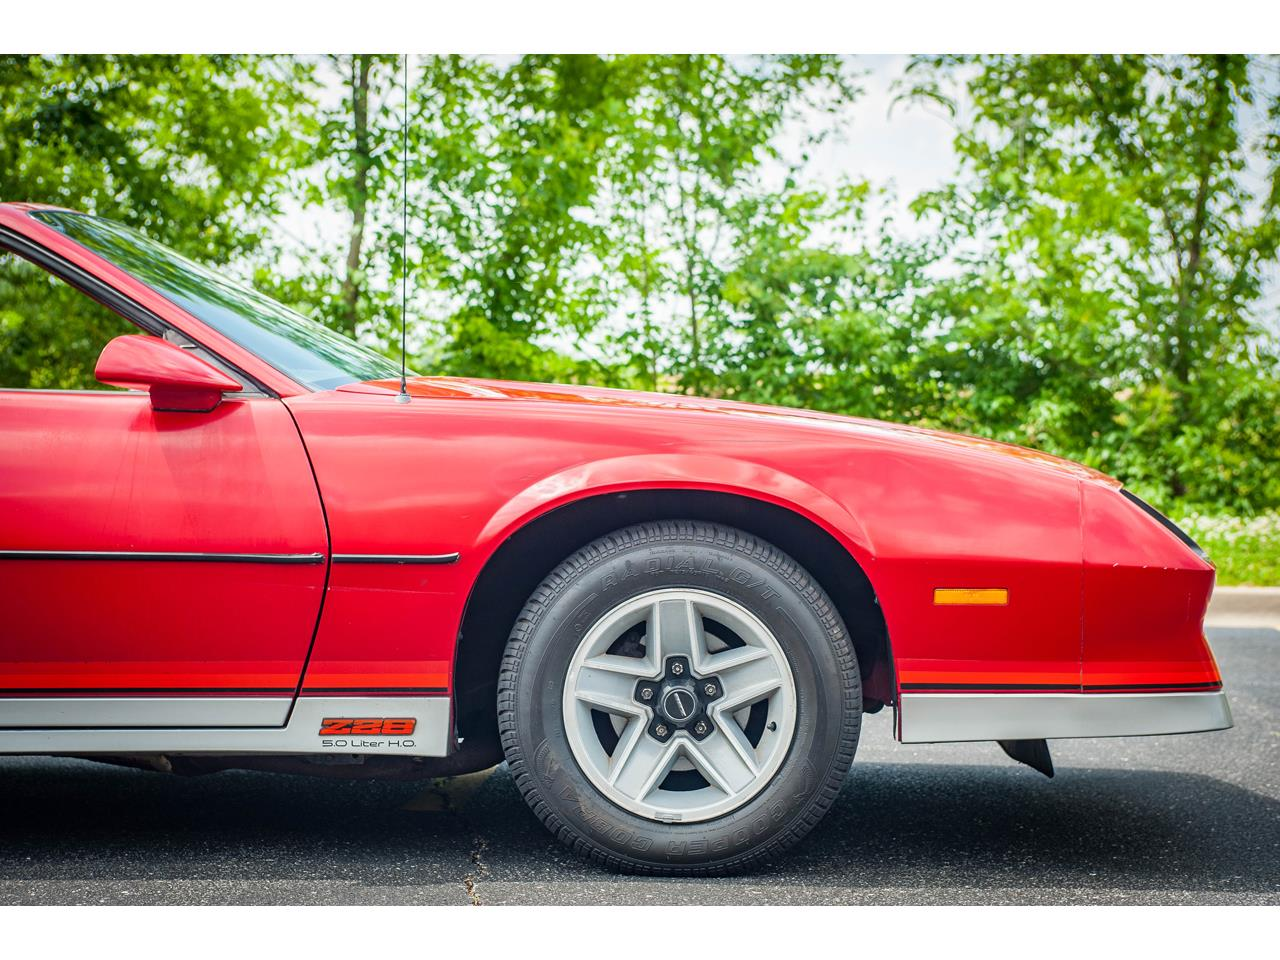 Large Picture of '84 Chevrolet Camaro located in O'Fallon Illinois Offered by Gateway Classic Cars - St. Louis - QB9Y